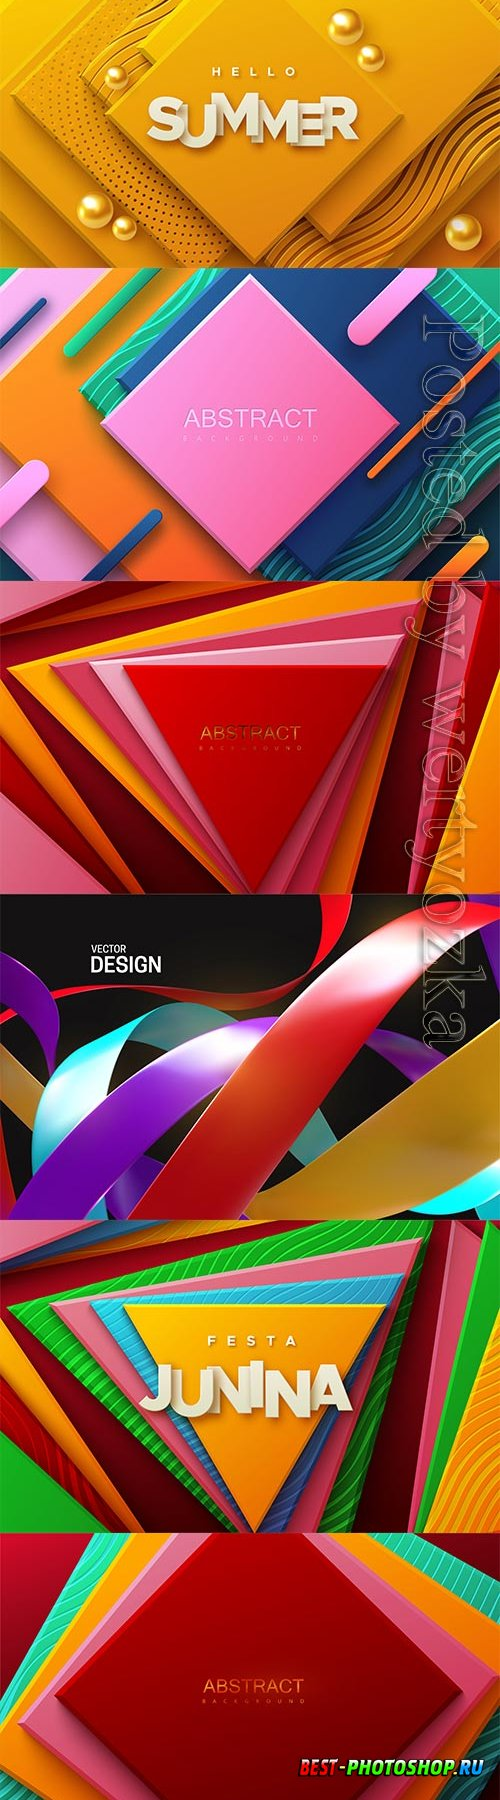 Abstract geometric background with multicolored square shapes